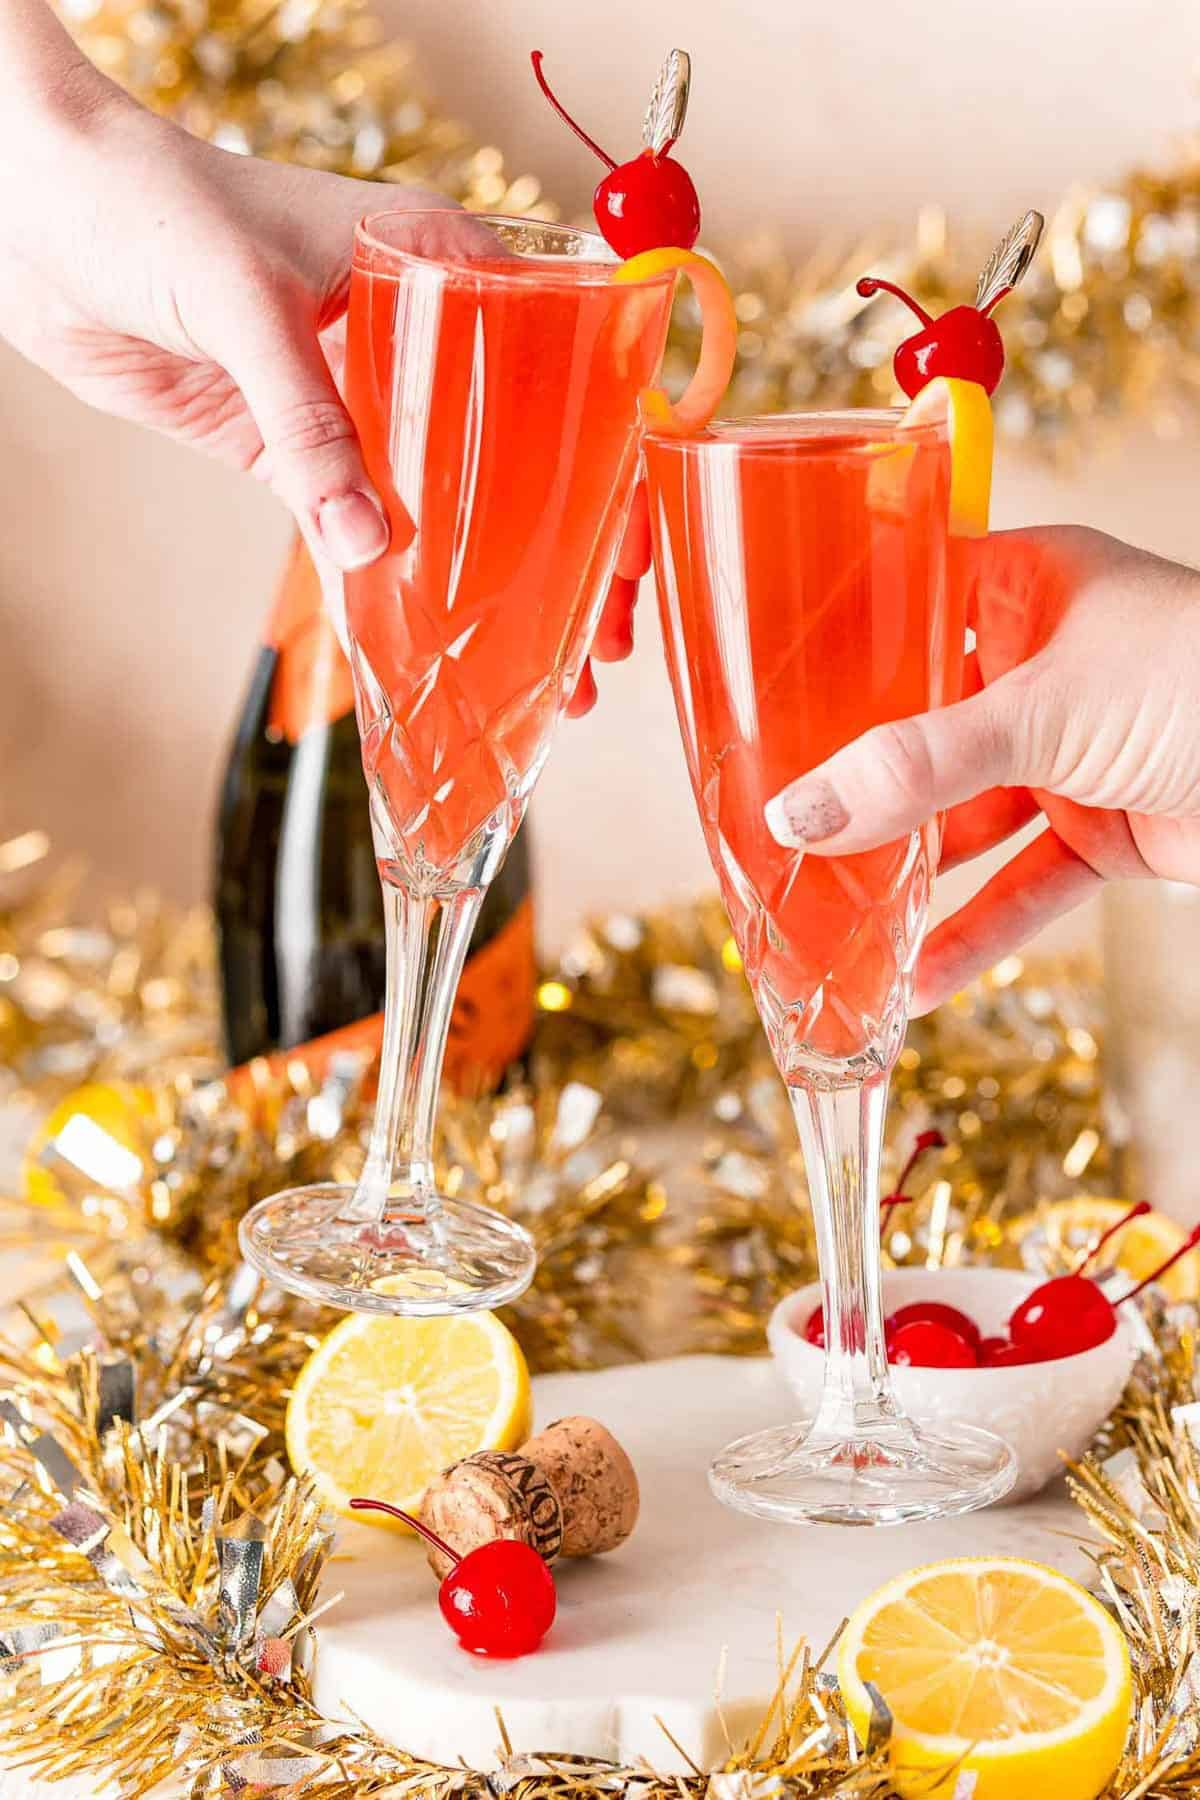 A champagne toast with light red liquid in champagne glasses.